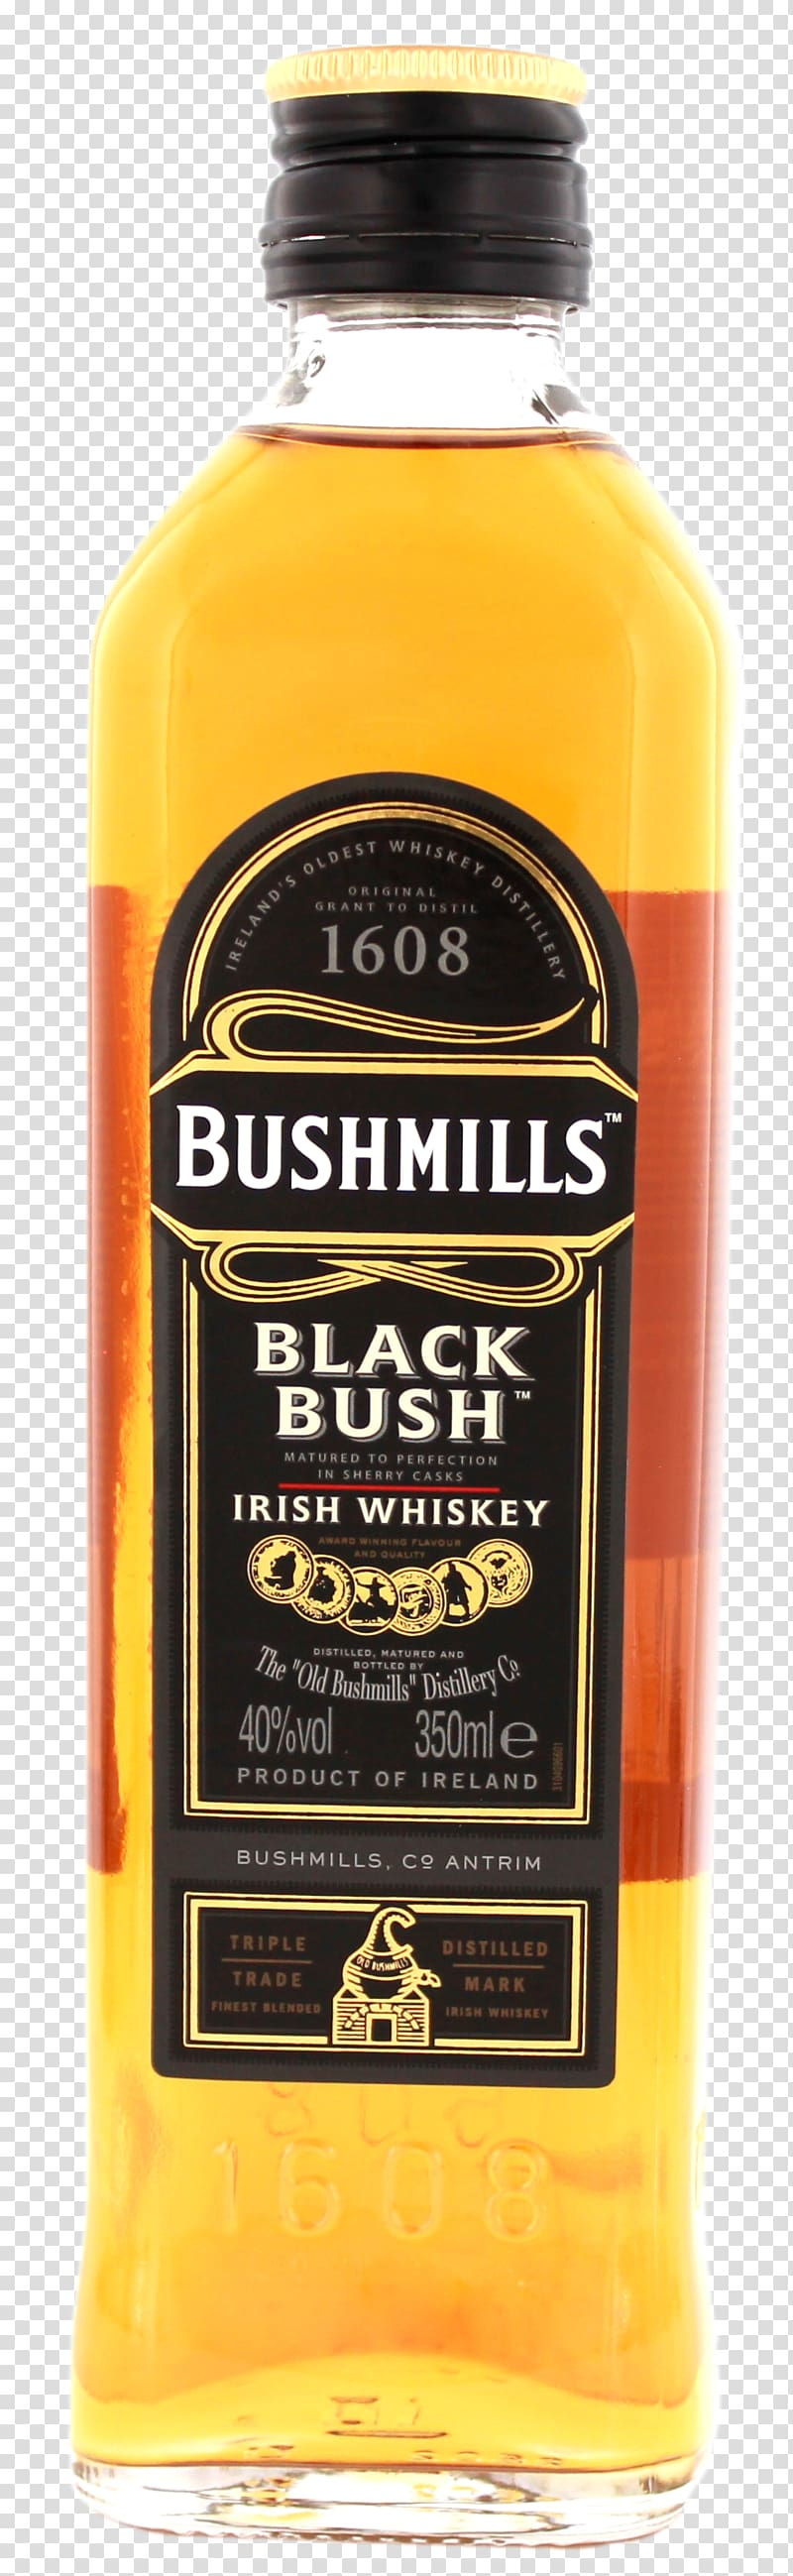 Old Bushmills Distillery PNG clipart images free download.